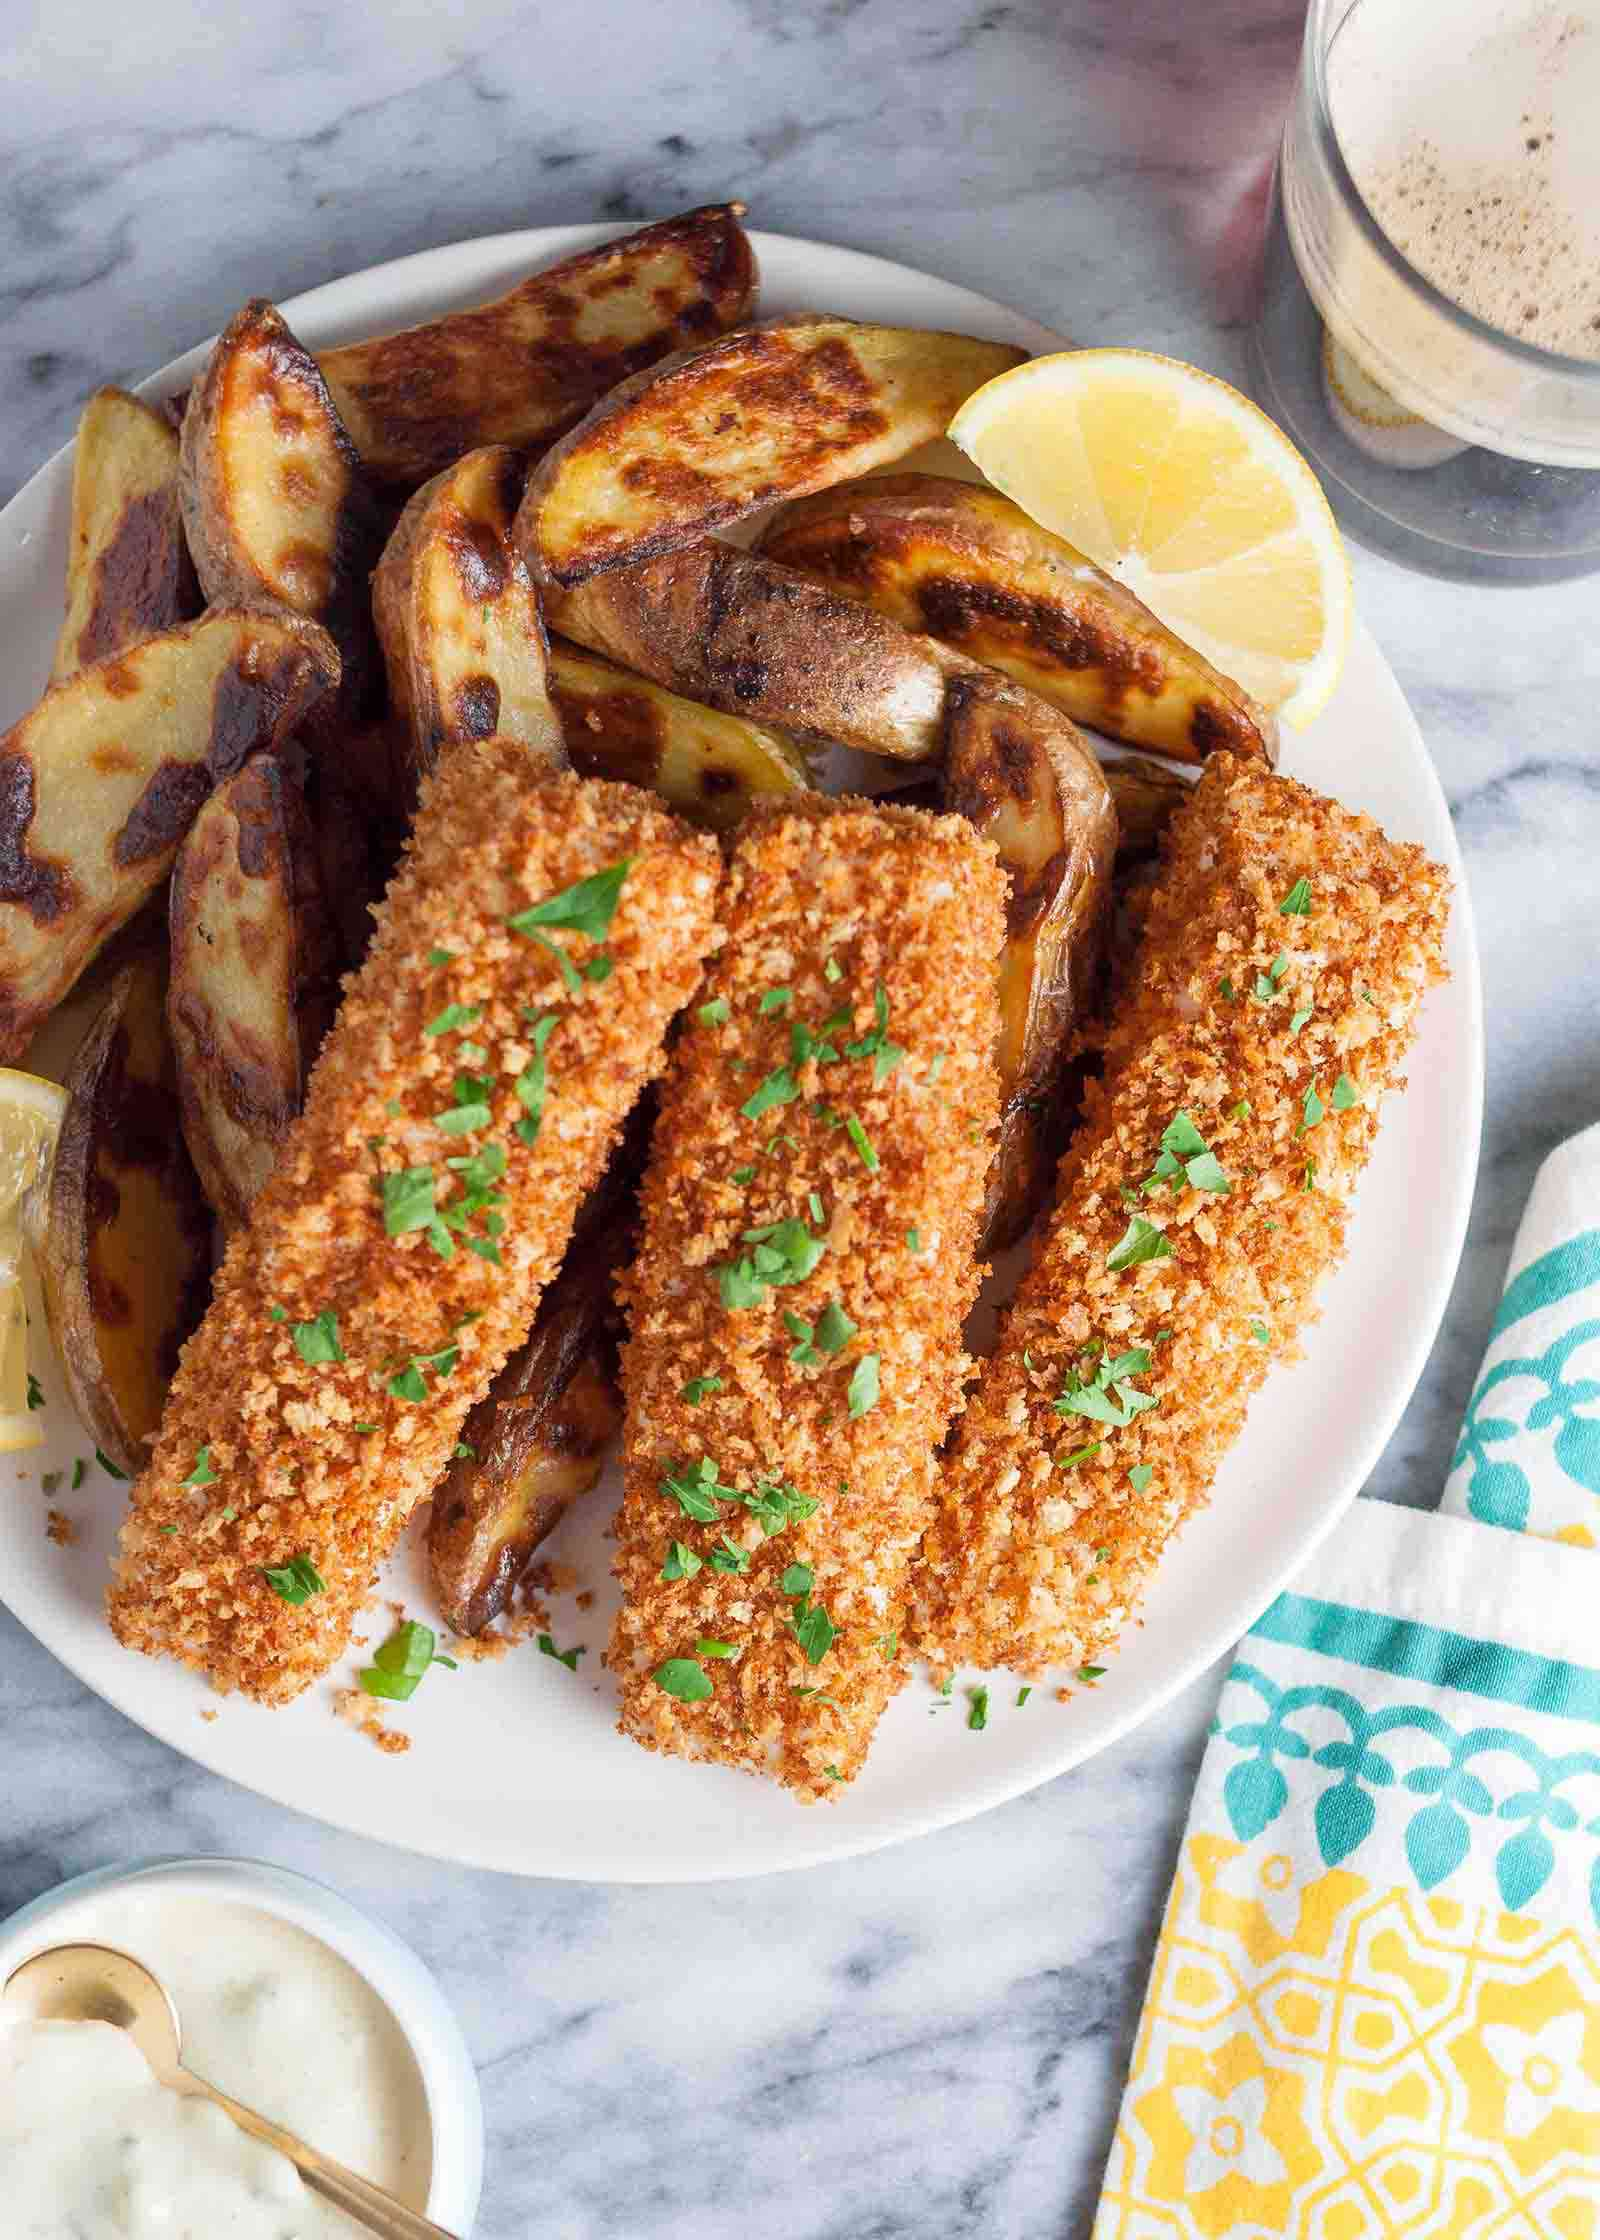 Baked Fish and Chips on Plate with Lemon Wedge